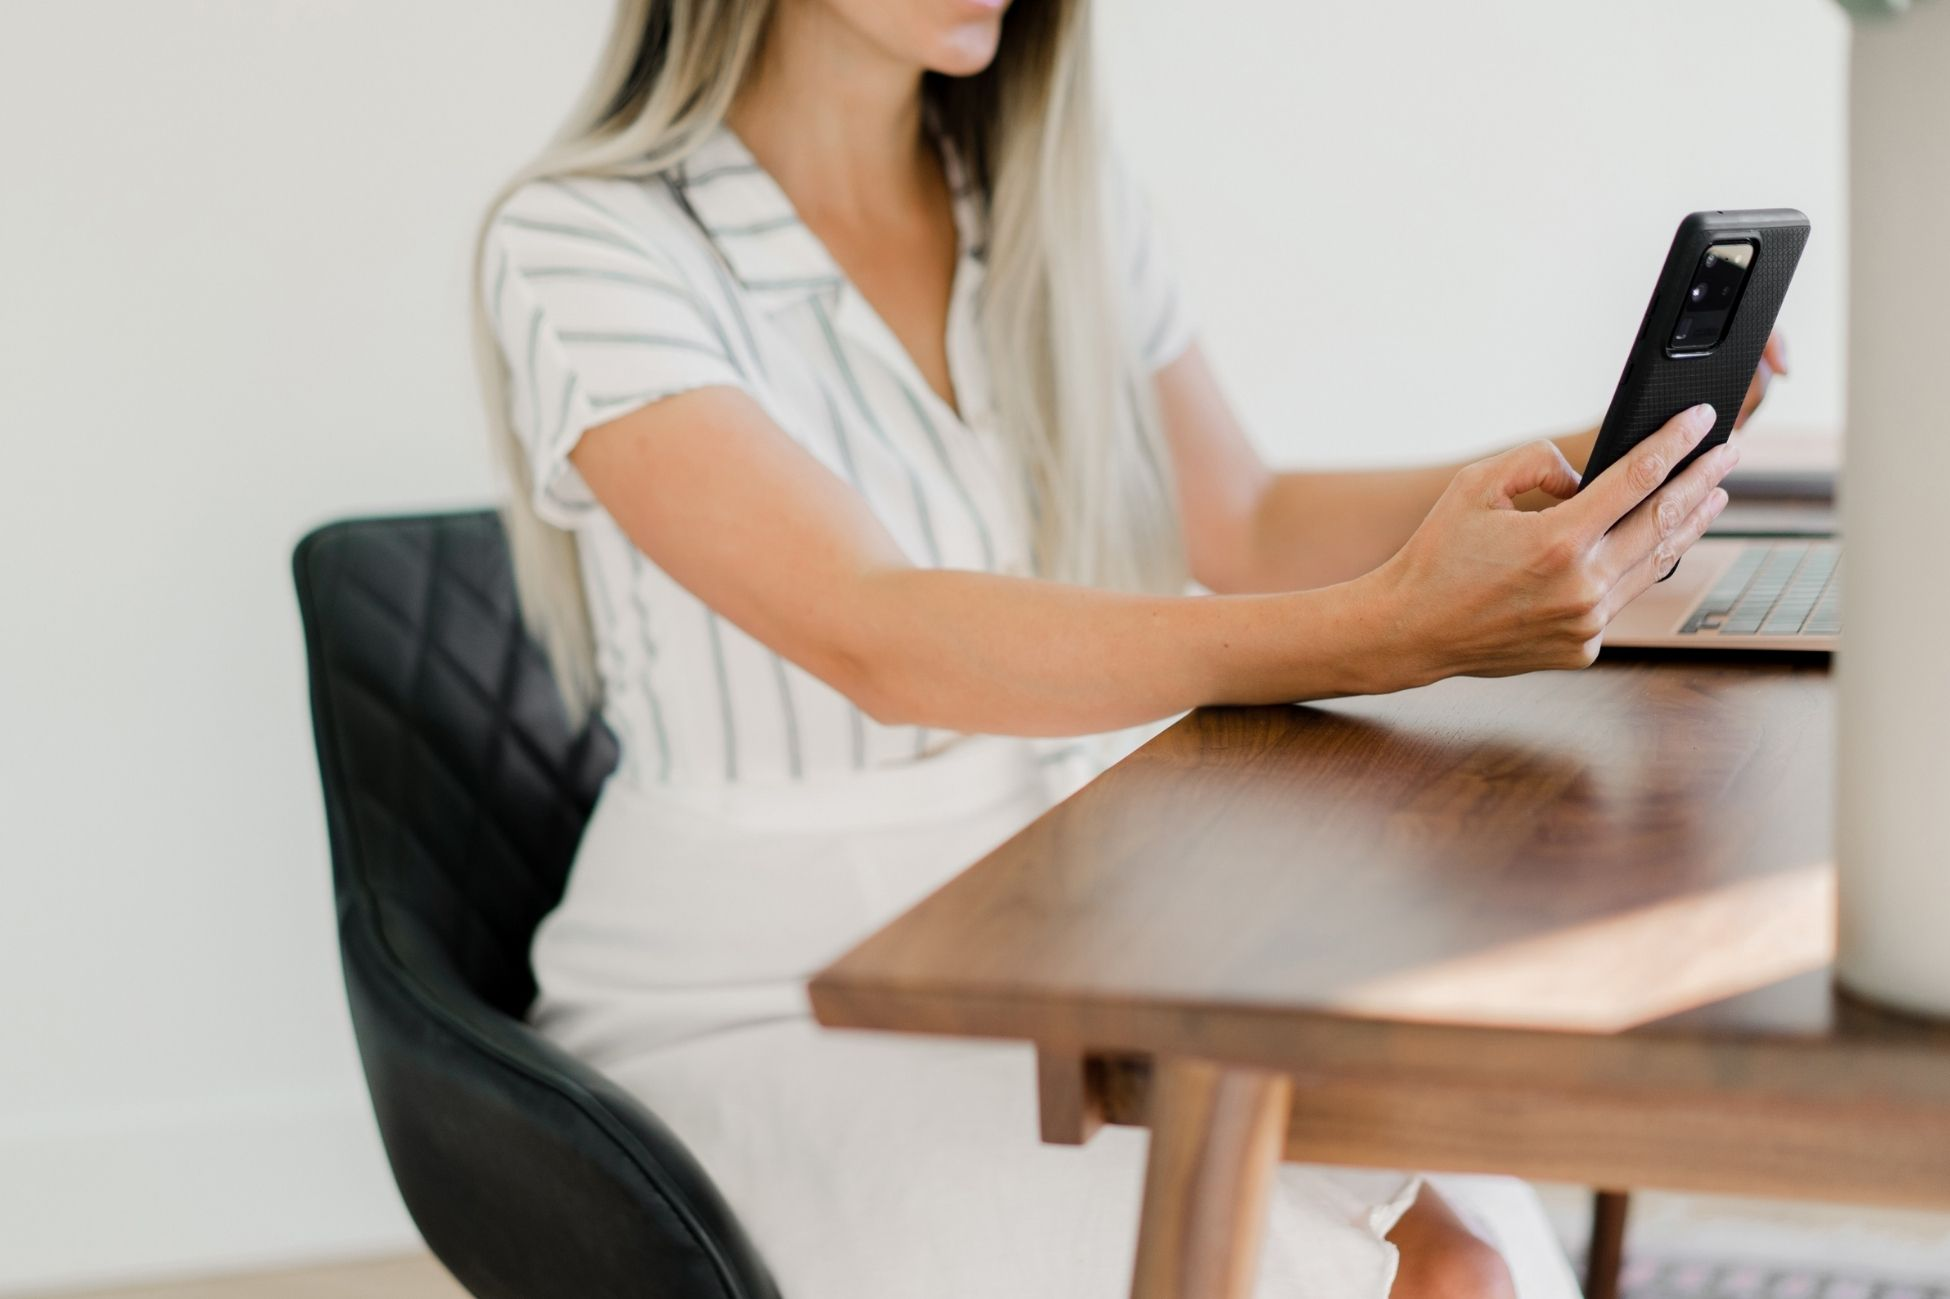 A registered dietitian sharing photos from her cell phone while sitting at a wooden desk